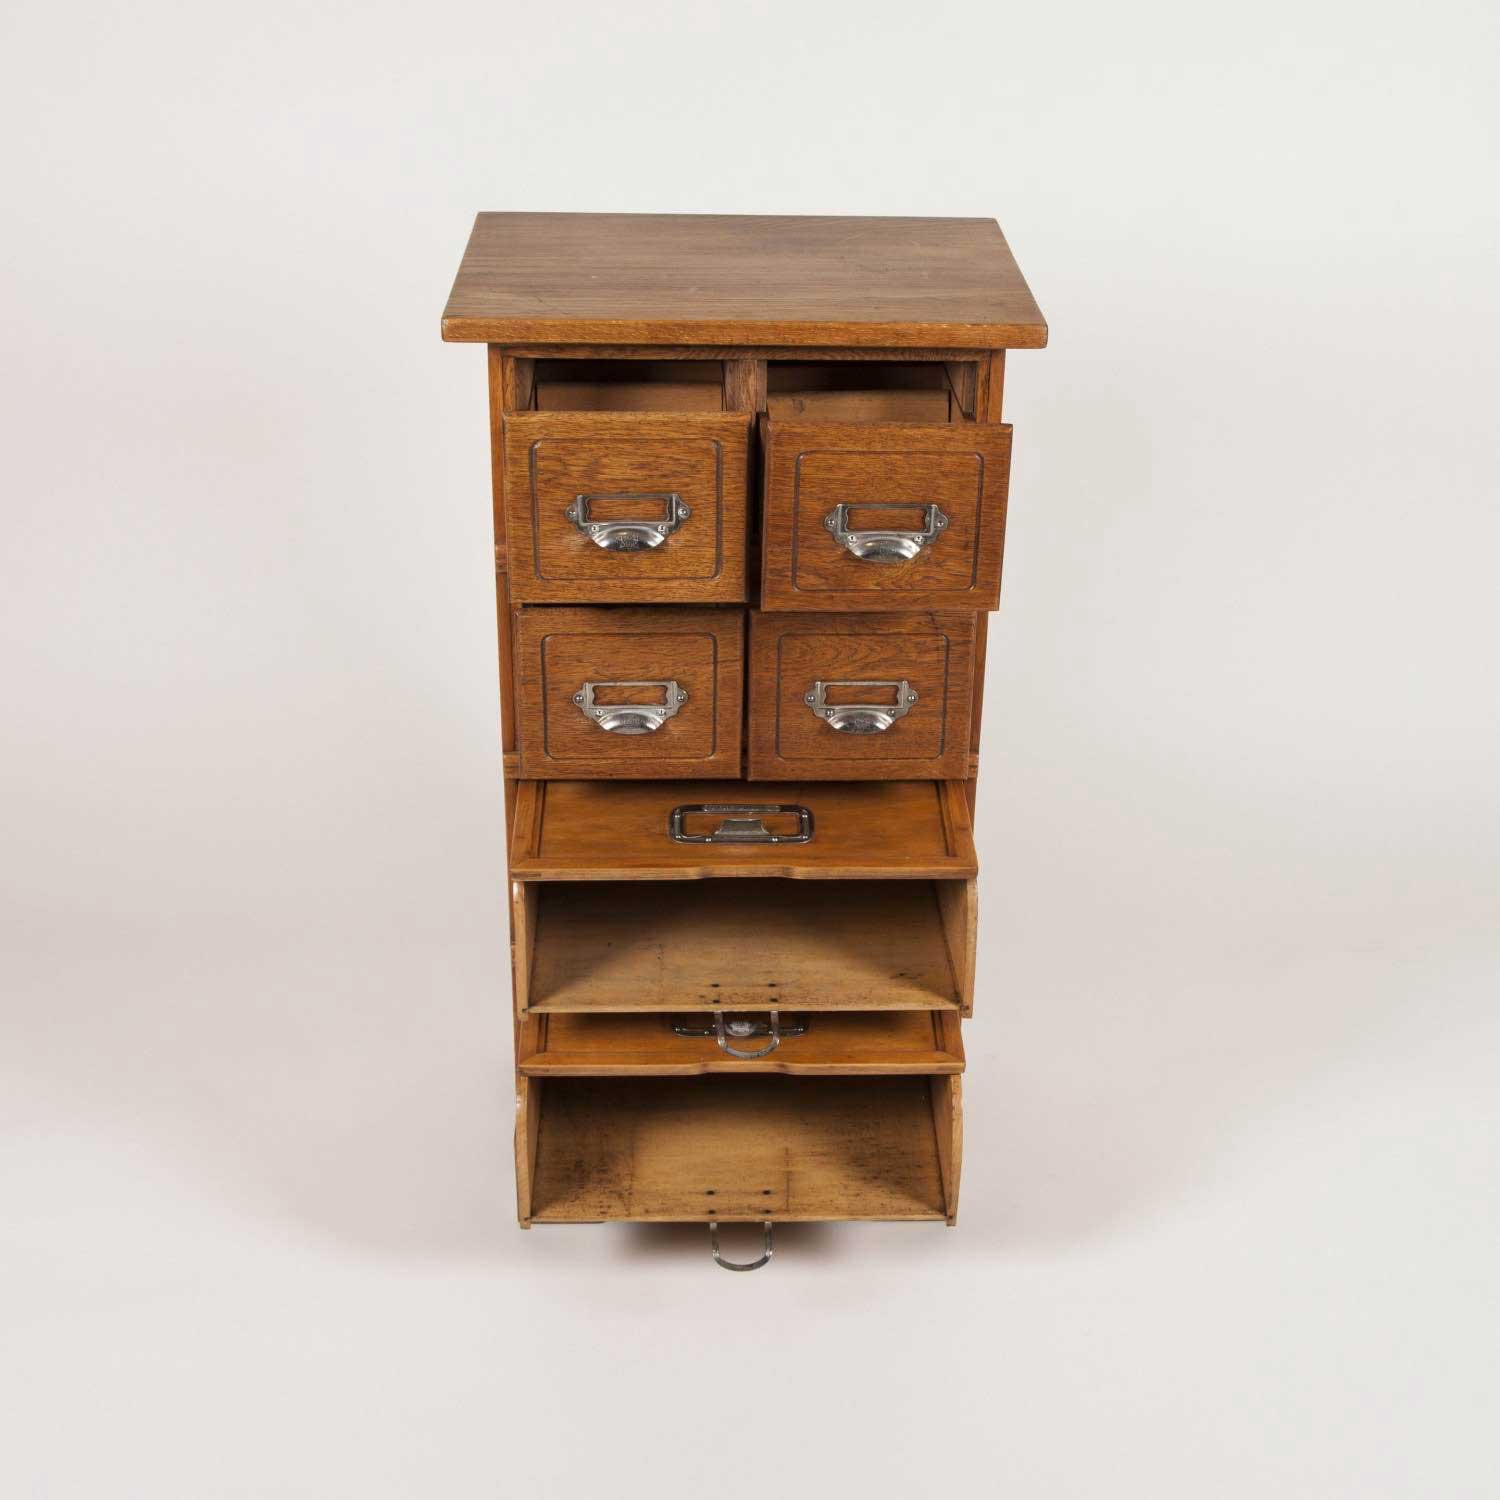 PAIR OF OAK FILING CABINETS BY STOLZENBERG